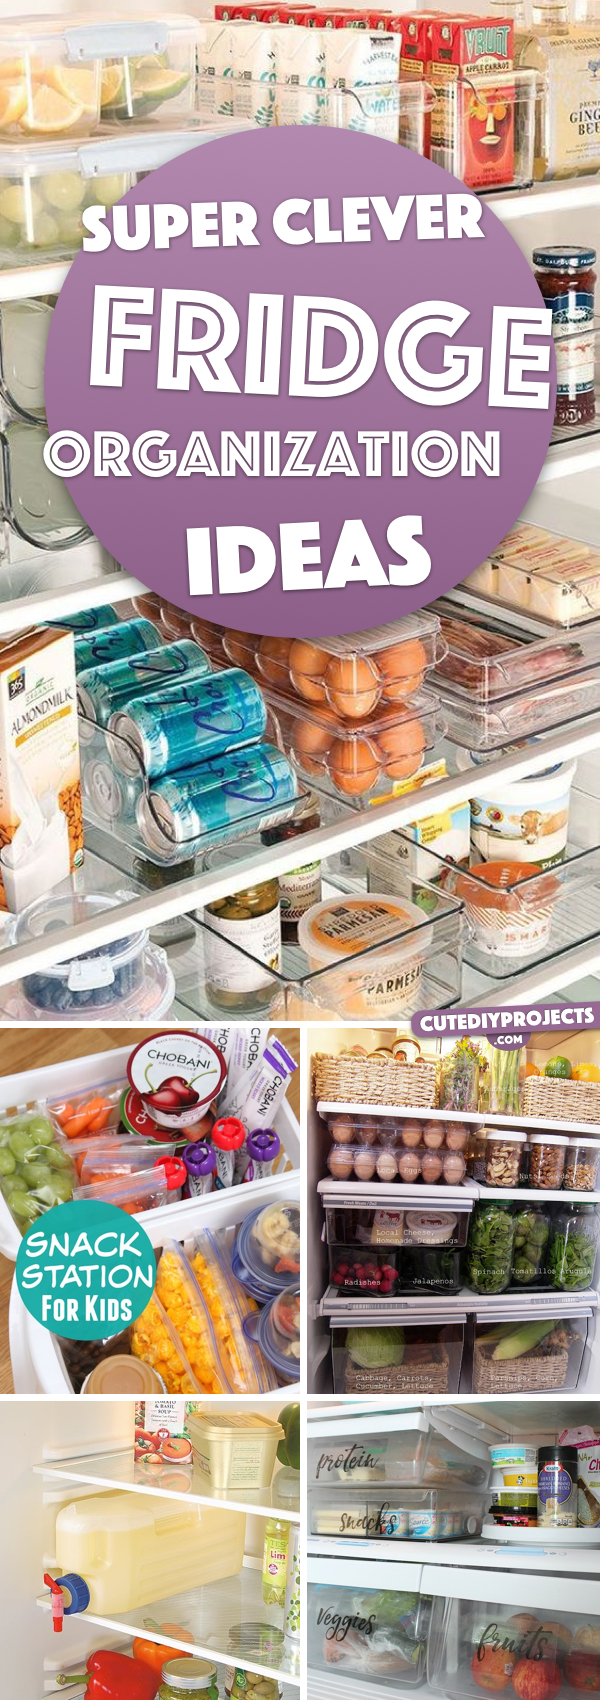 20 Super Clever Fridge Organization Ideas Nullifying All the Clutter